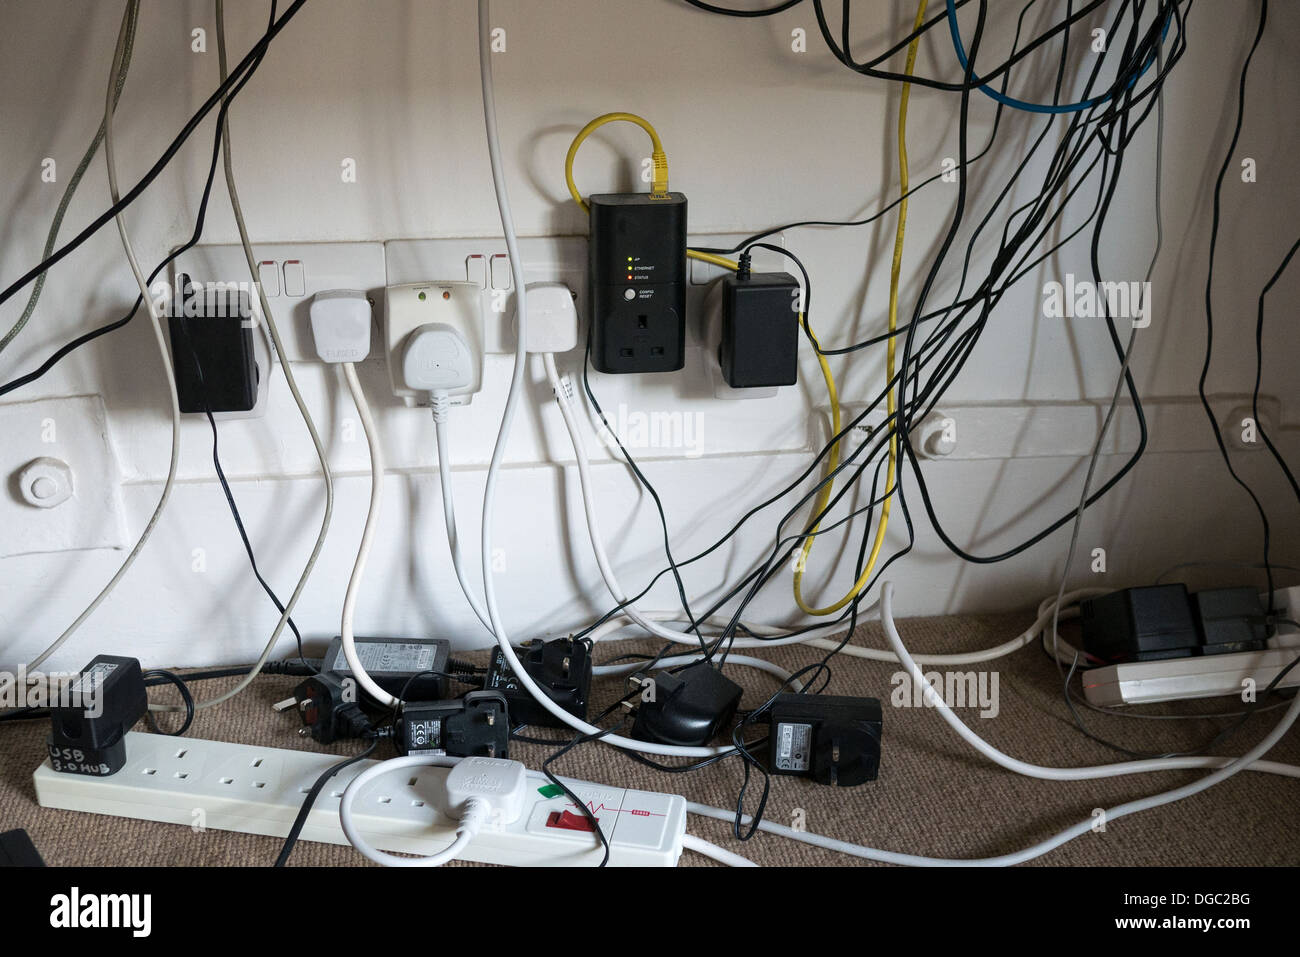 a jumble of power cables and computer wires under a desk